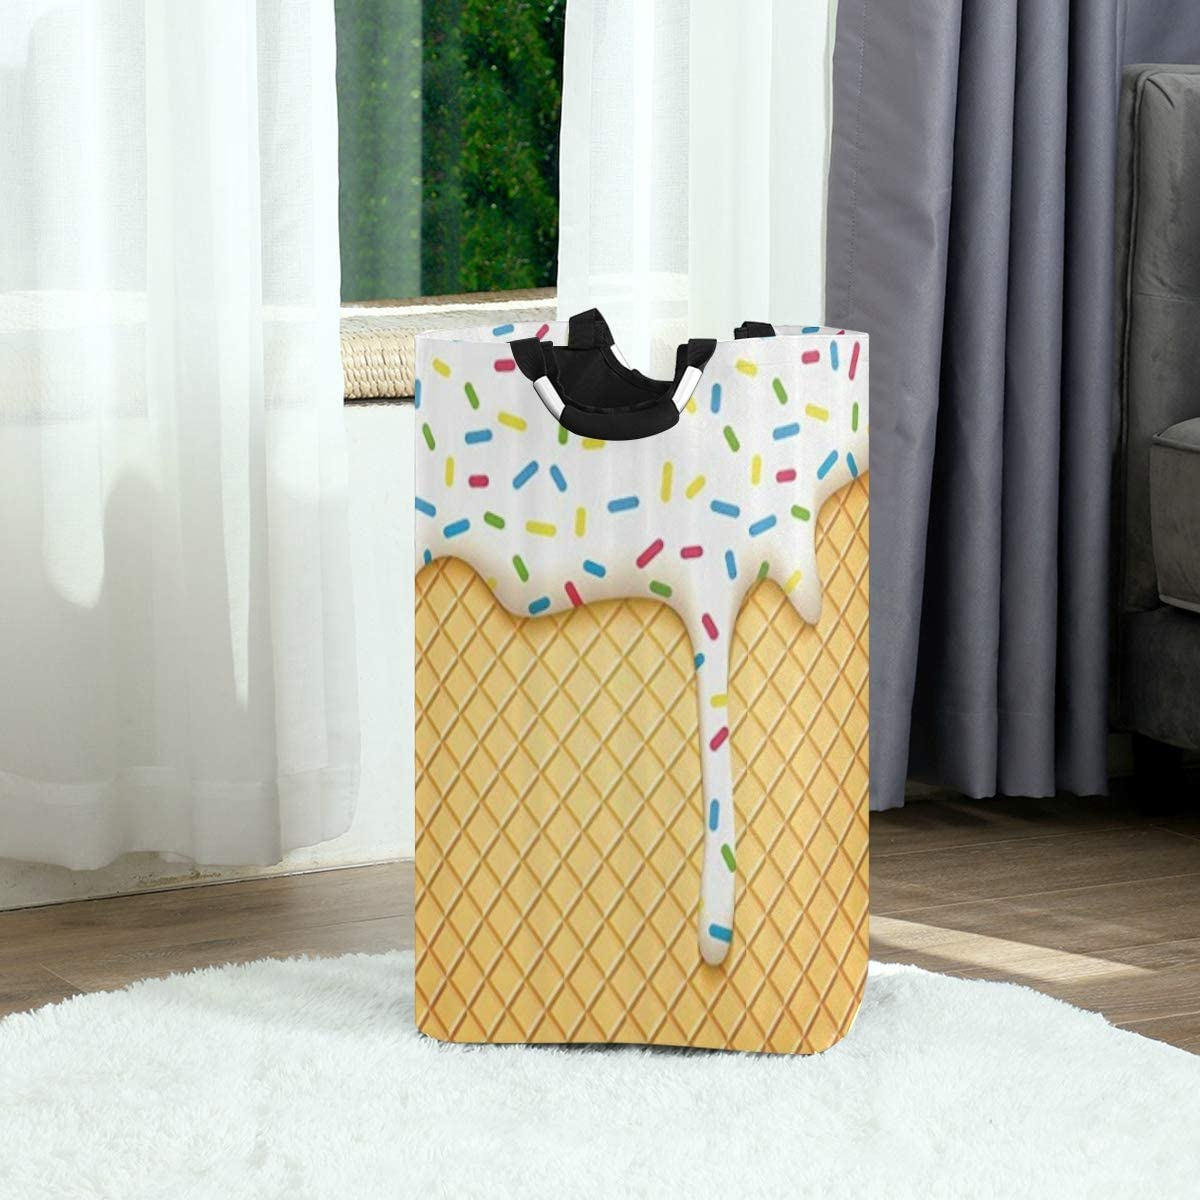 DAOPUDA Laundry Bag Food Cartoon Like Image of and Melting Ice Cream Cones Colored Sprinkles Artistic Print Large Laundry Hamper Bags for Heavy-Duty Use with Strap,Clothes Basket for Dorm Bathroom